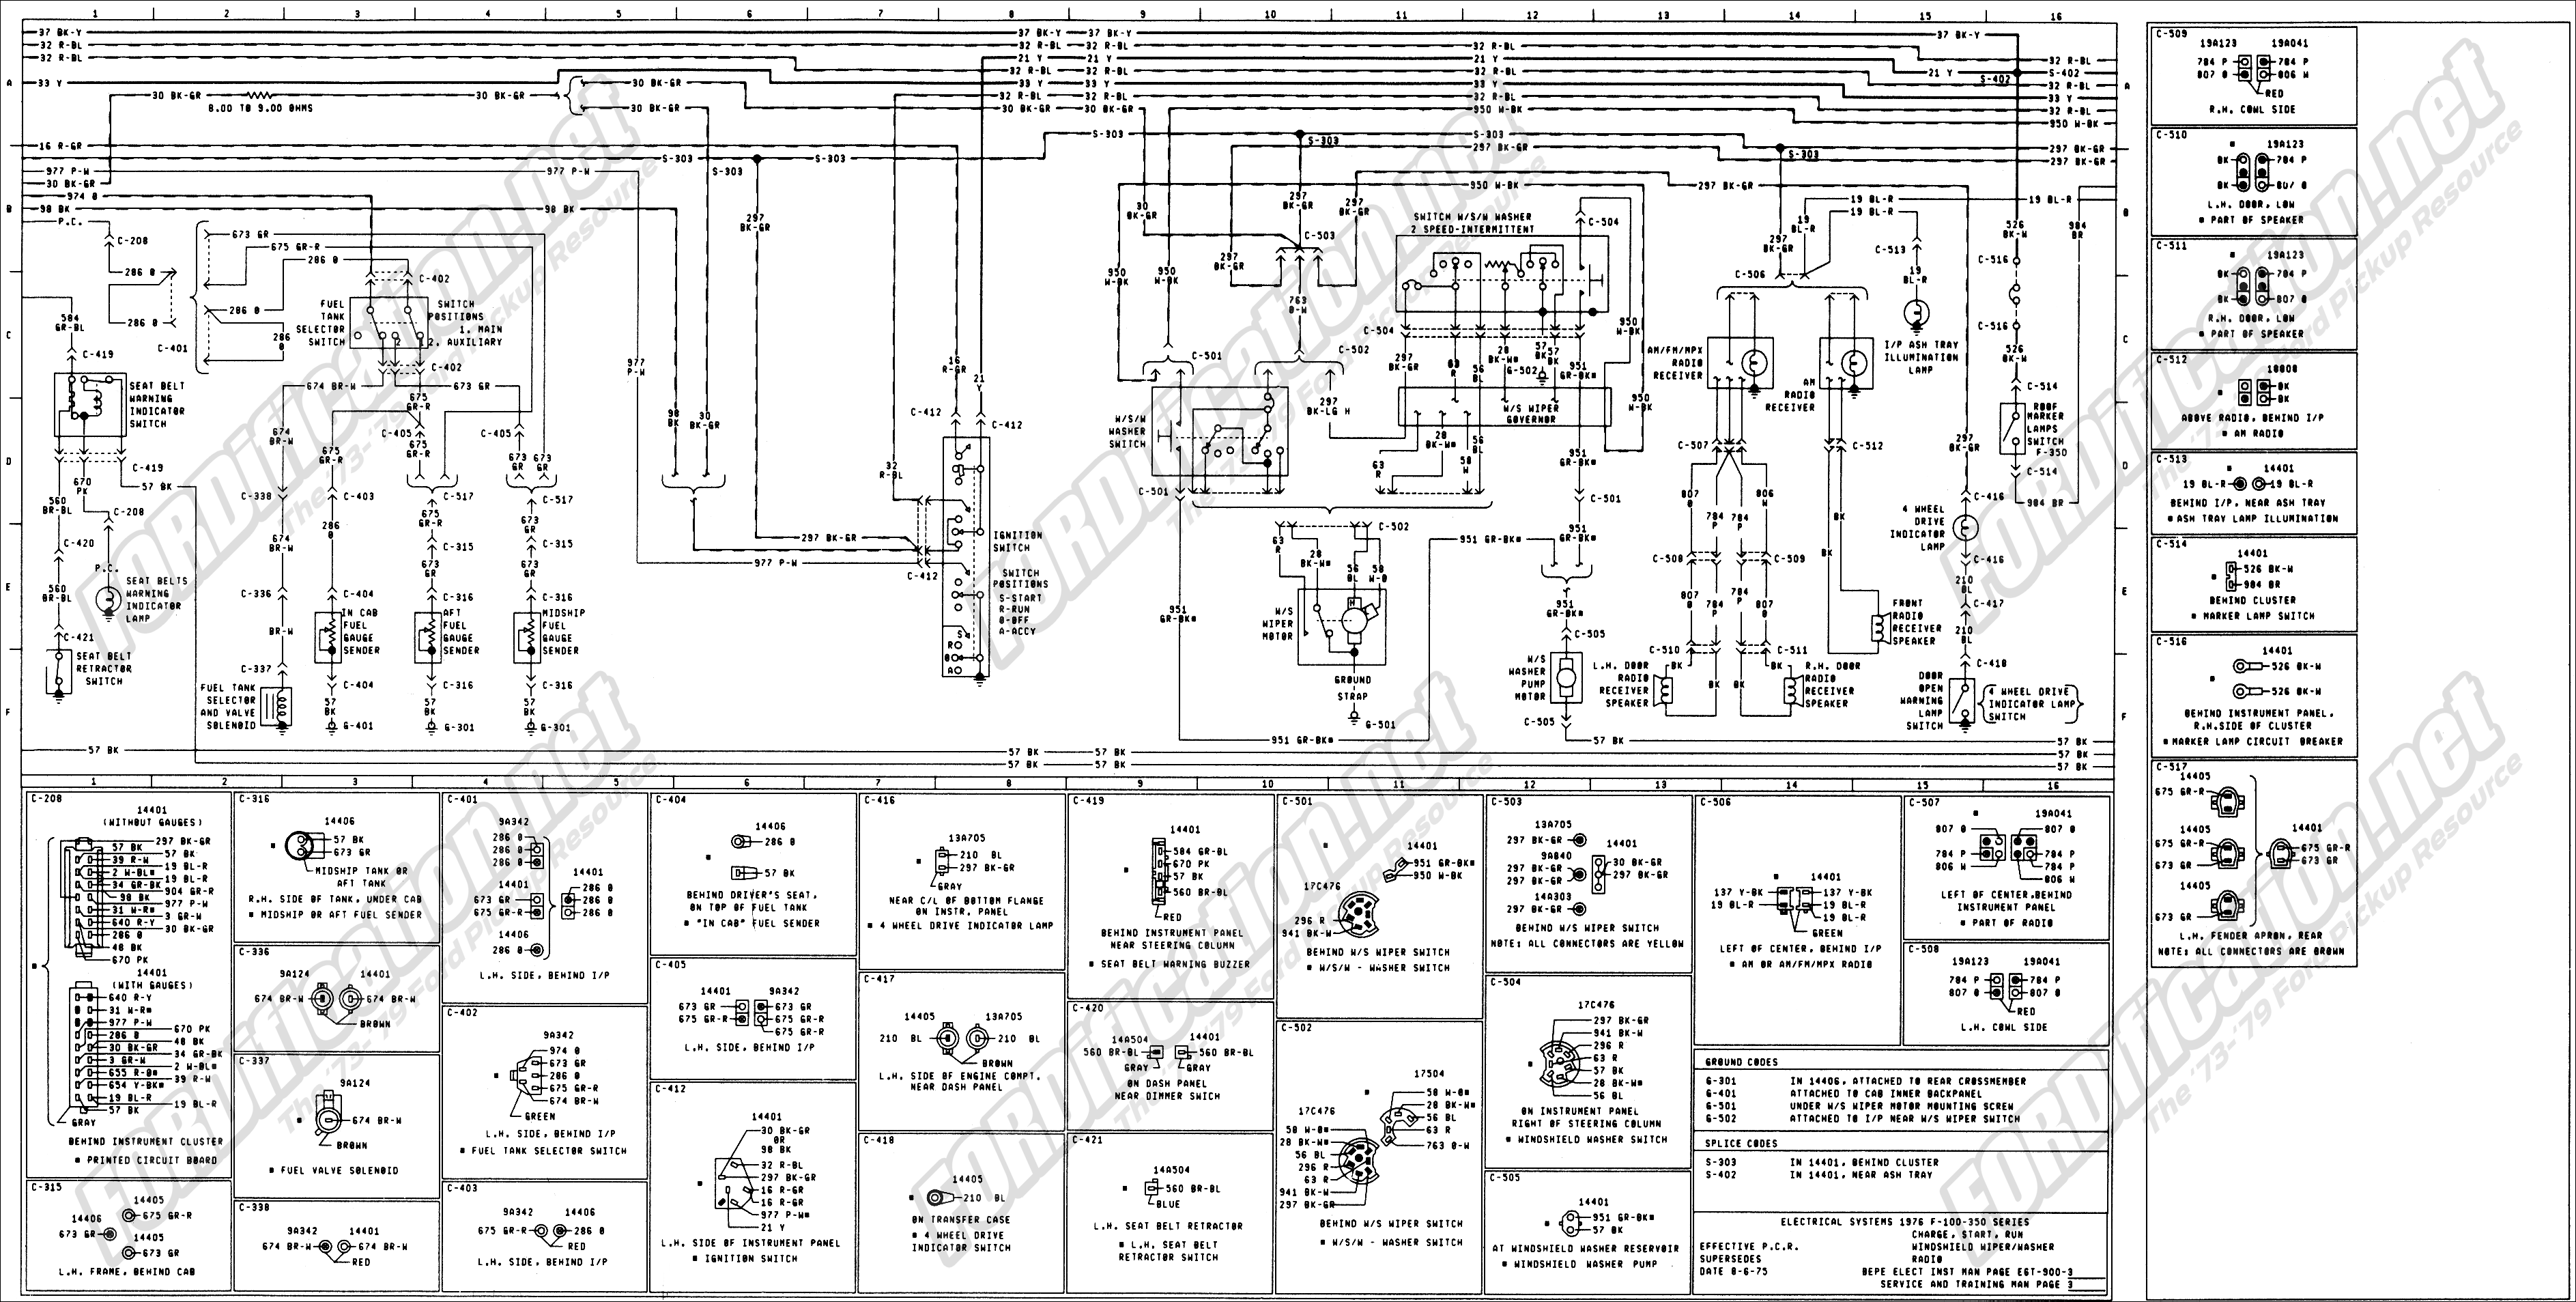 1973 1979 ford truck wiring diagrams schematics fordification net rh fordification net 2006 ford f250 wiring schematic 2011 ford f250 wiring schematic